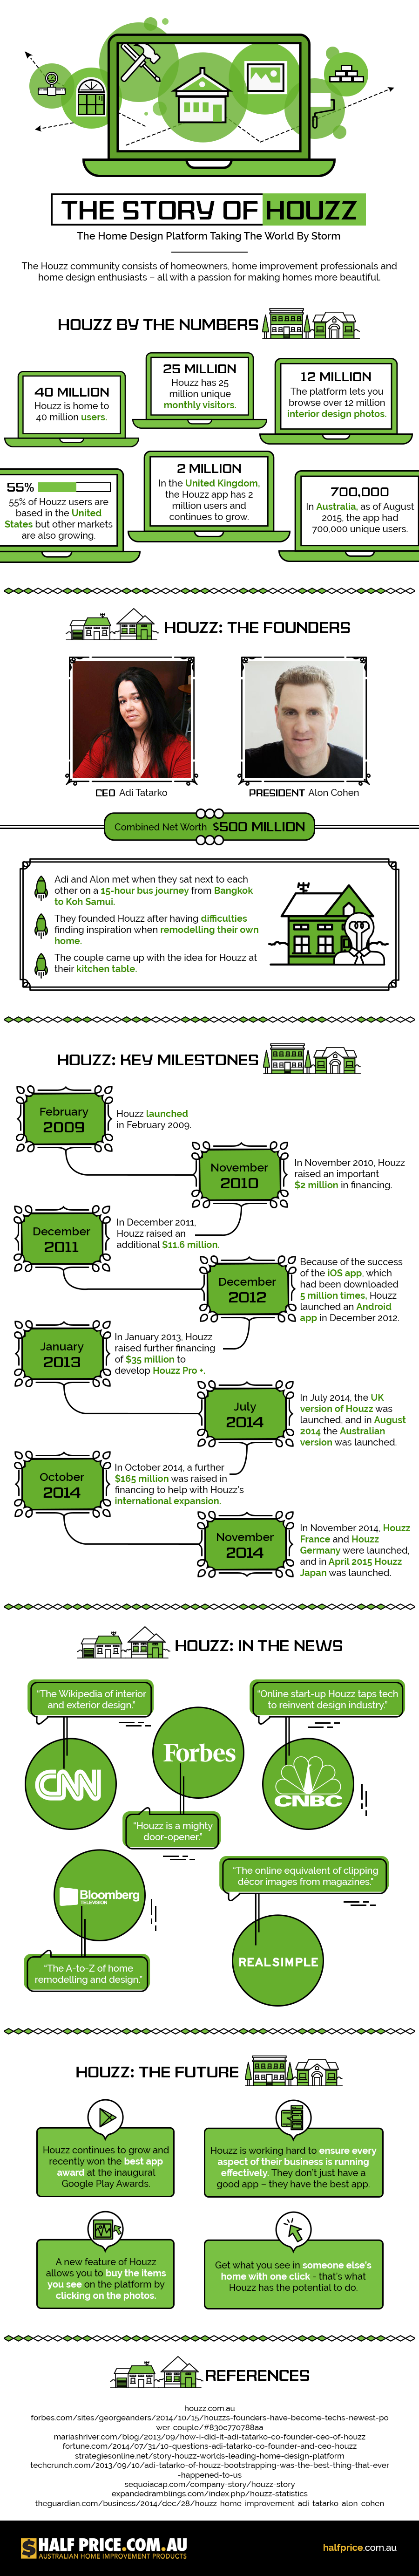 the story of houzz